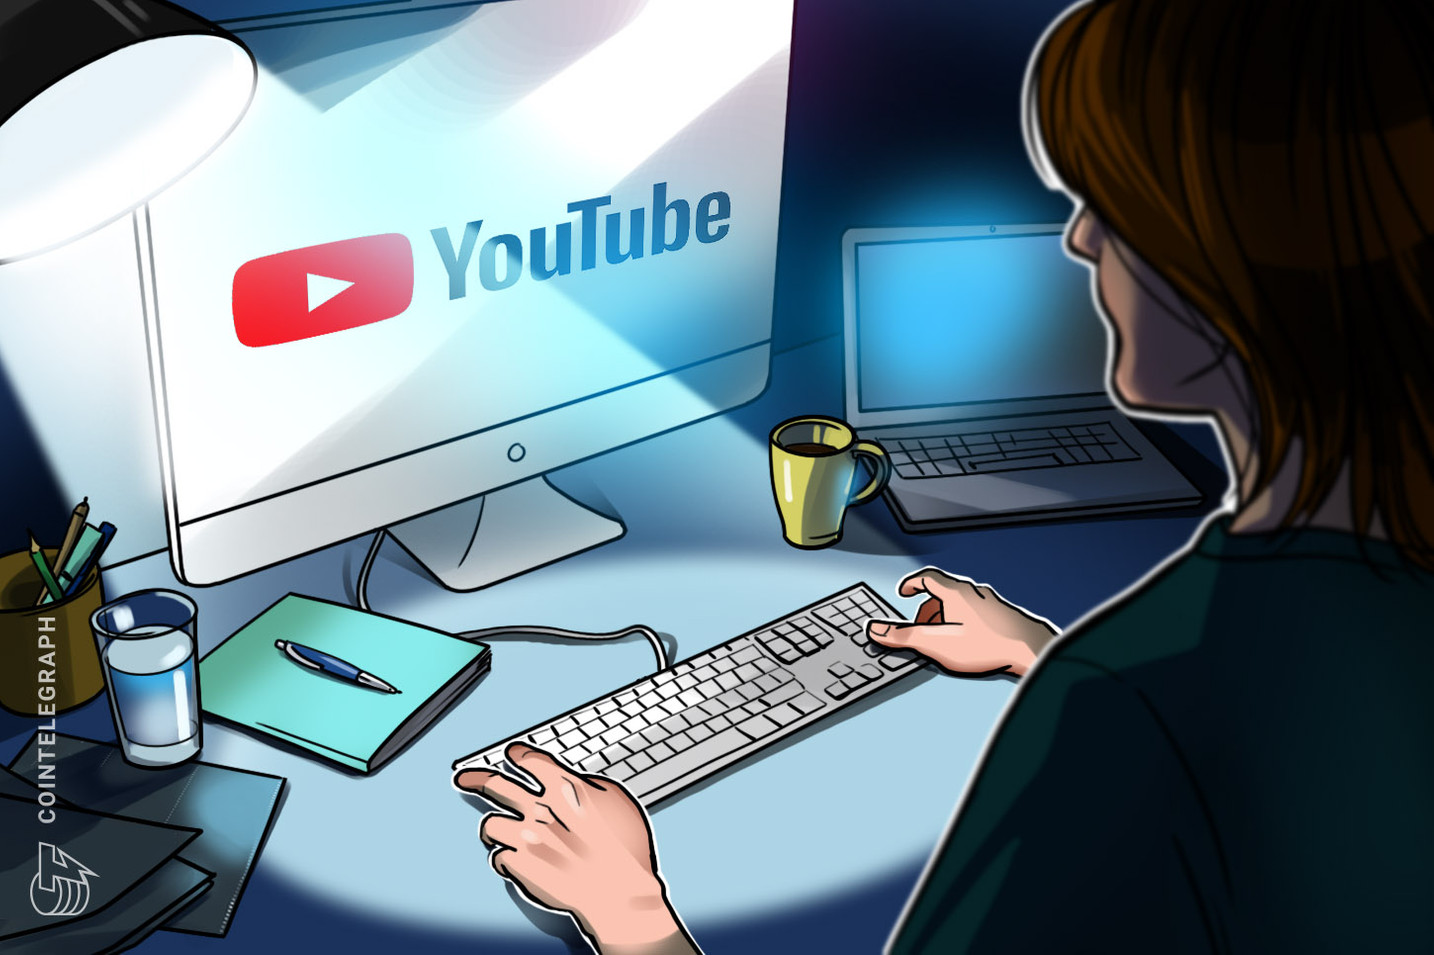 YouTube: We're Not Liable for Crypto Scams